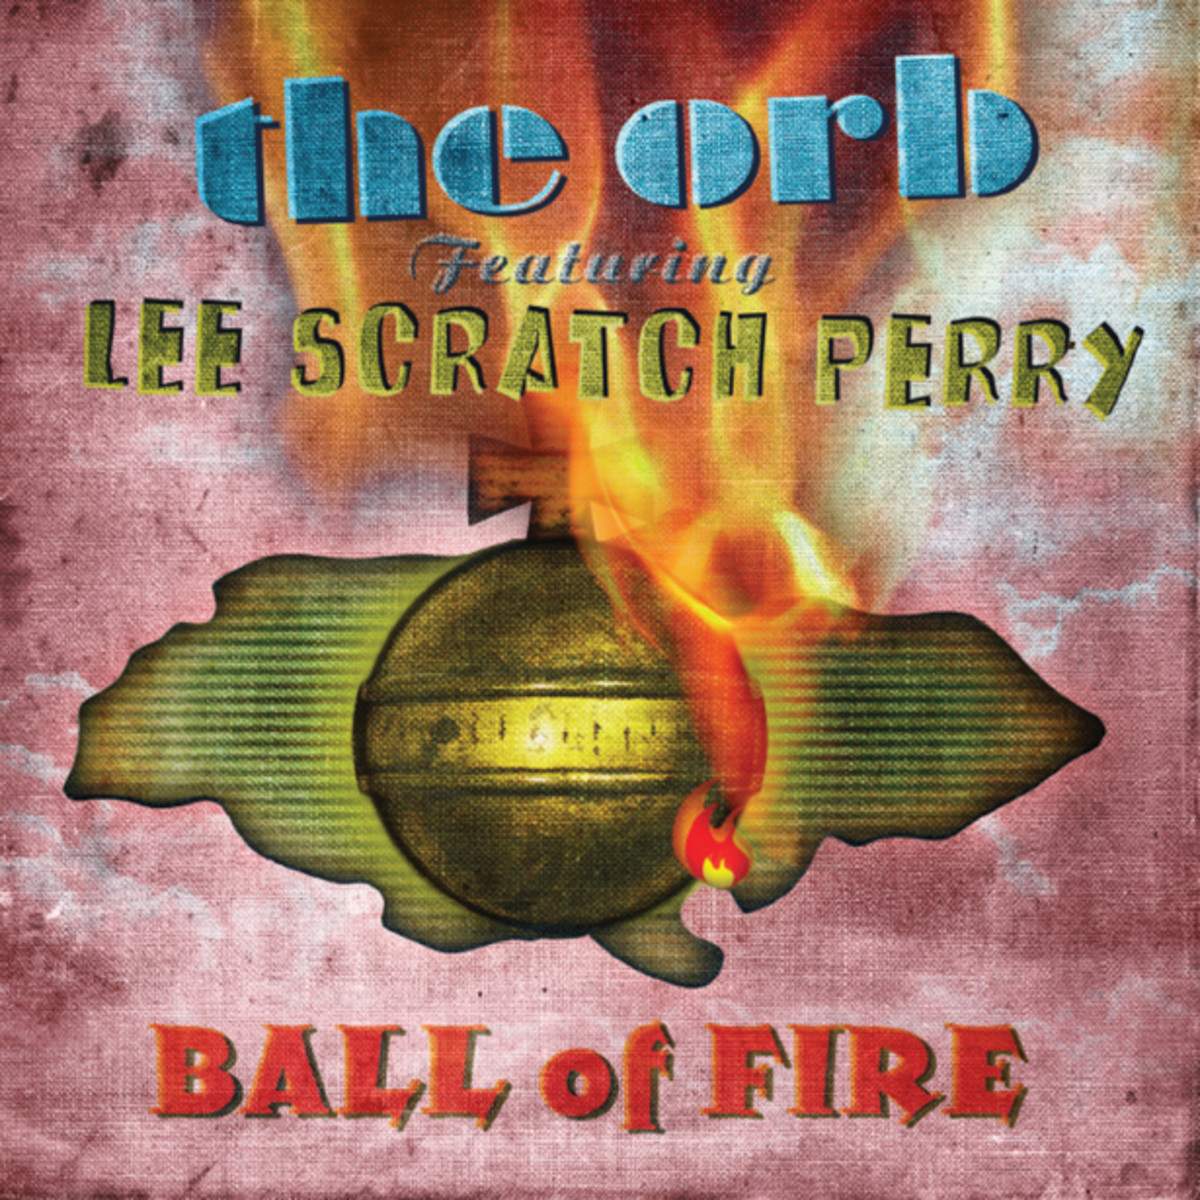 "Review: The Orb Featuring Lee 'Scratch' Perry ""Ball of Fire"" Cooking Vinyl"